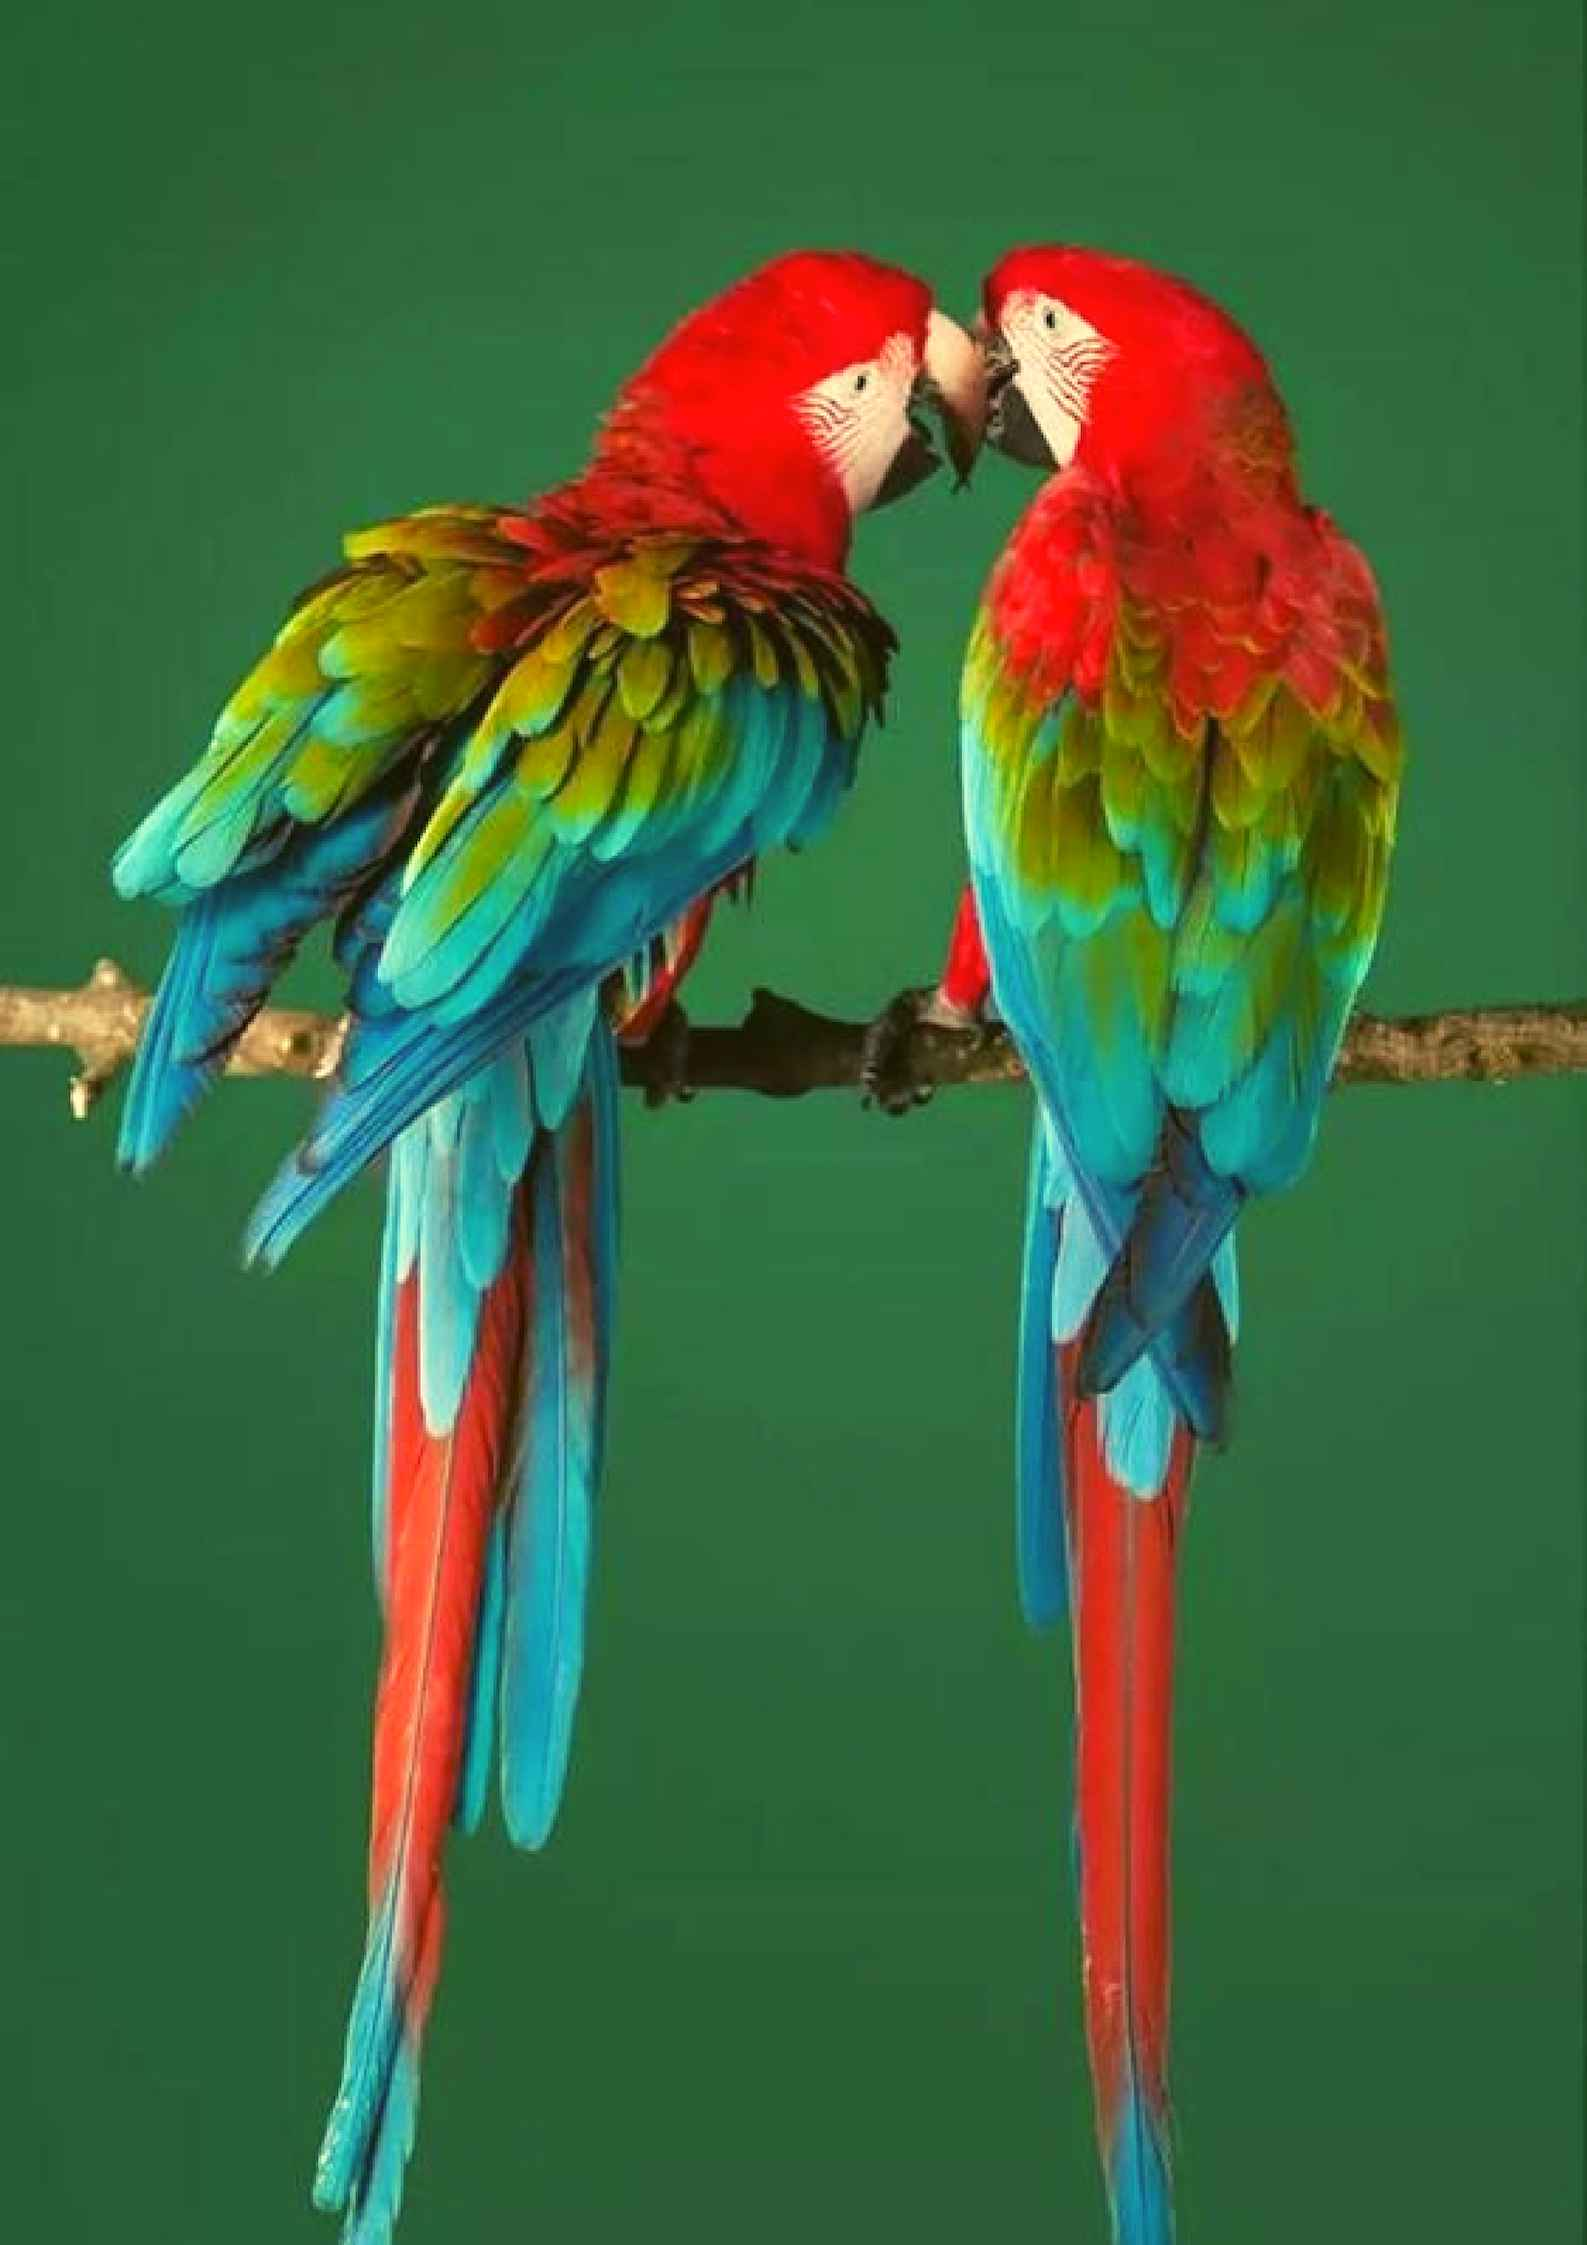 Love Birds Hd Wallpapers Posted By Zoey Sellers